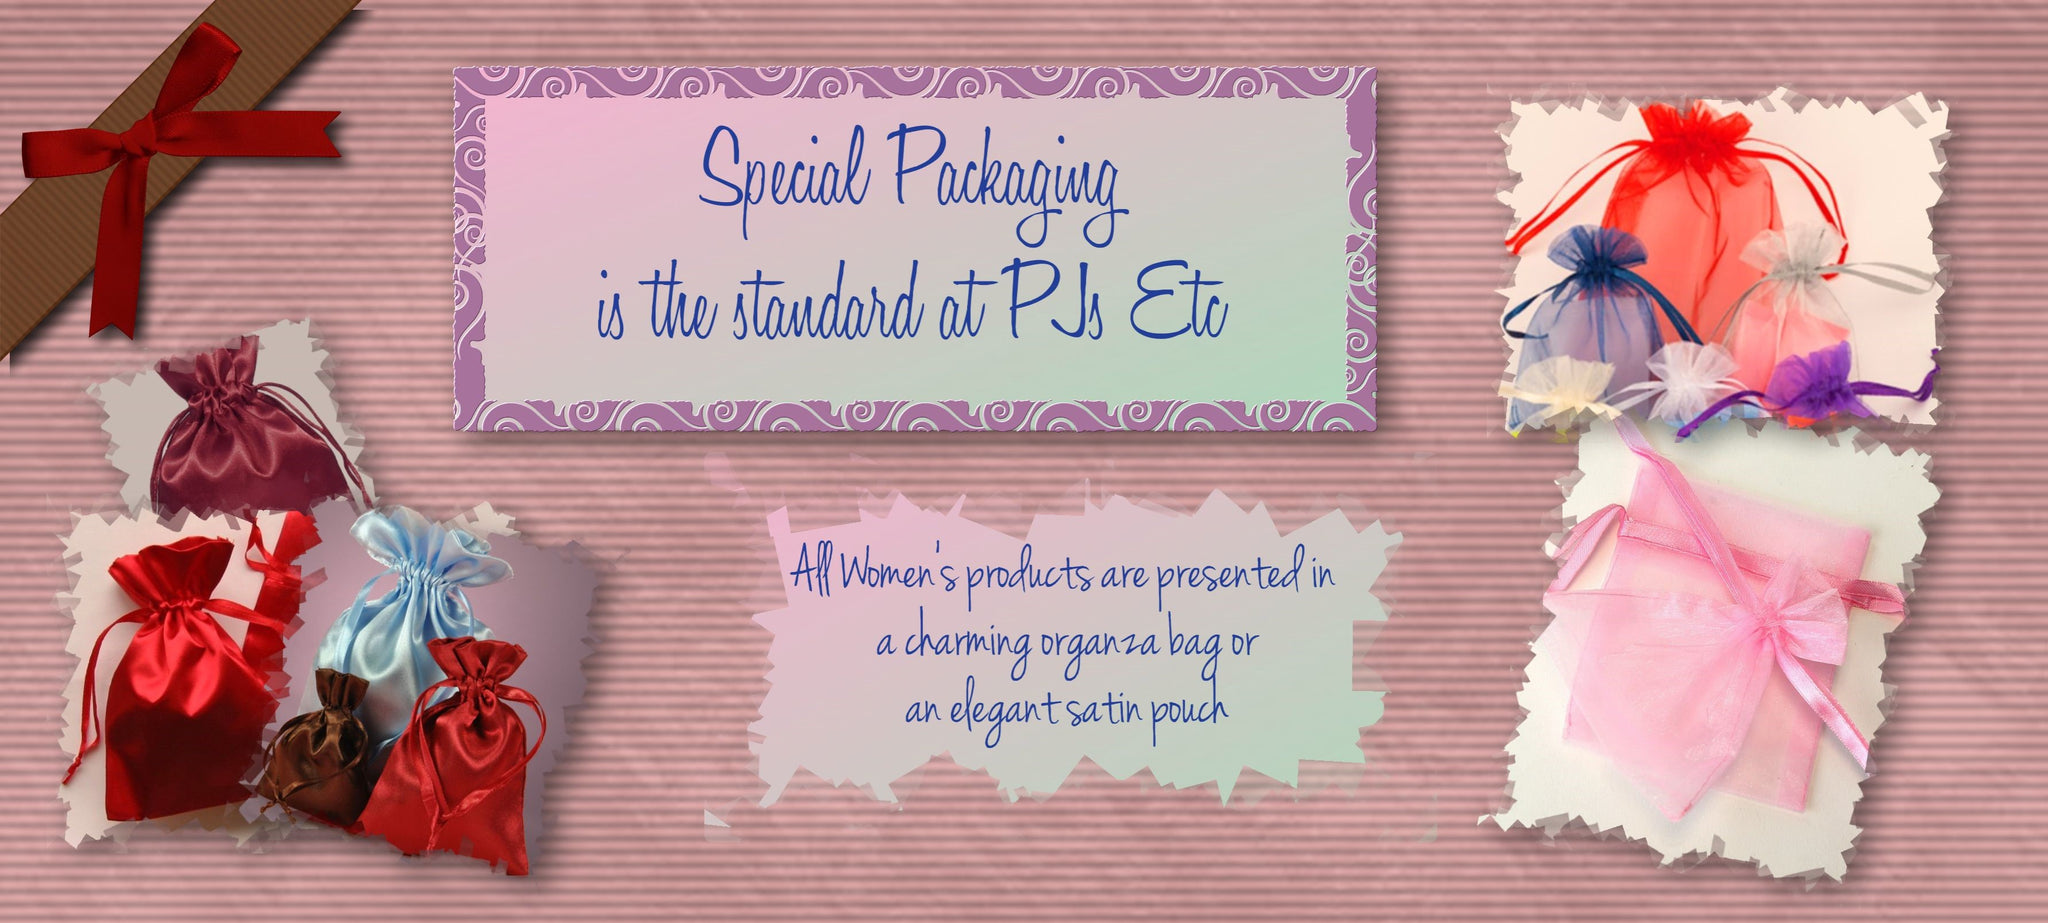 PJs Etc | Special product packaging for all purchases. Satin lingerie bag or pajama organza bag packages each product. Free Special Packaging.